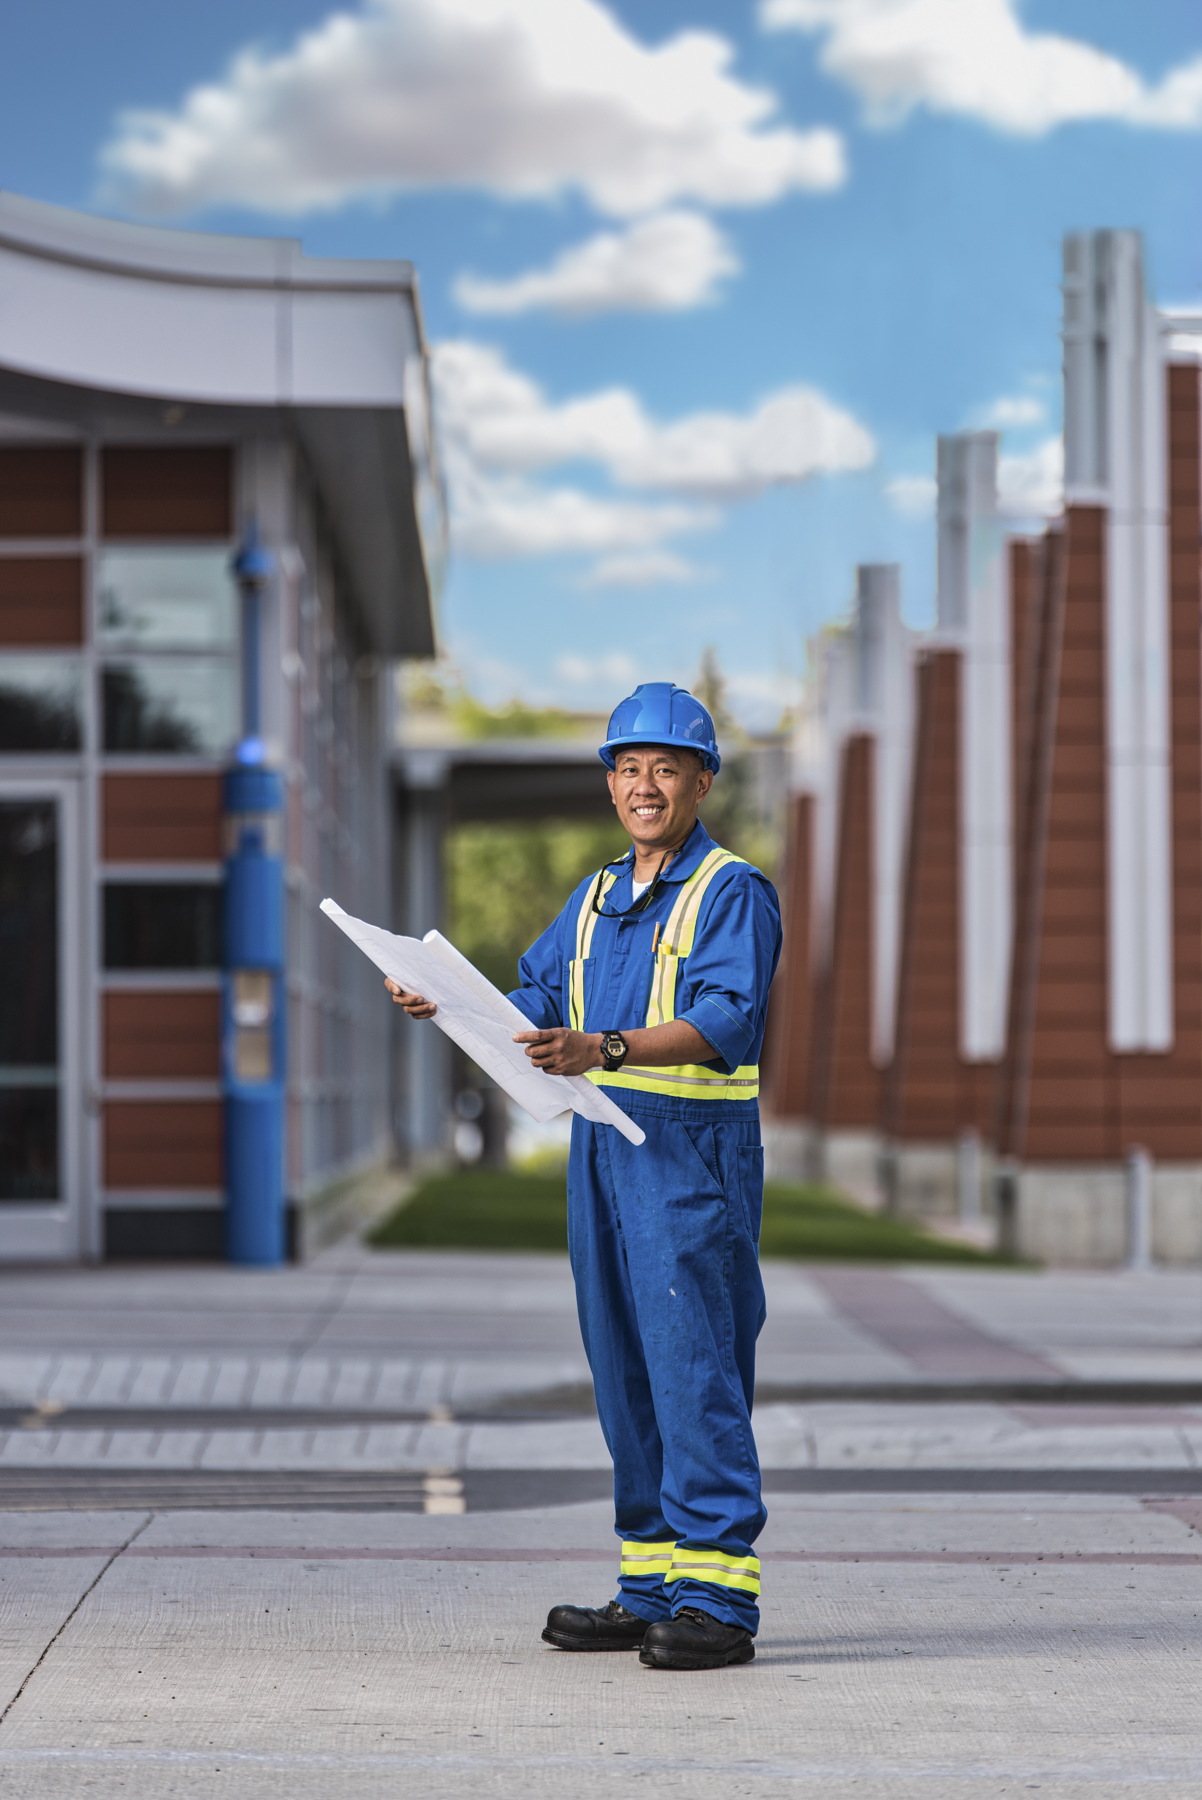 editorial photo of an architect holding a blue print